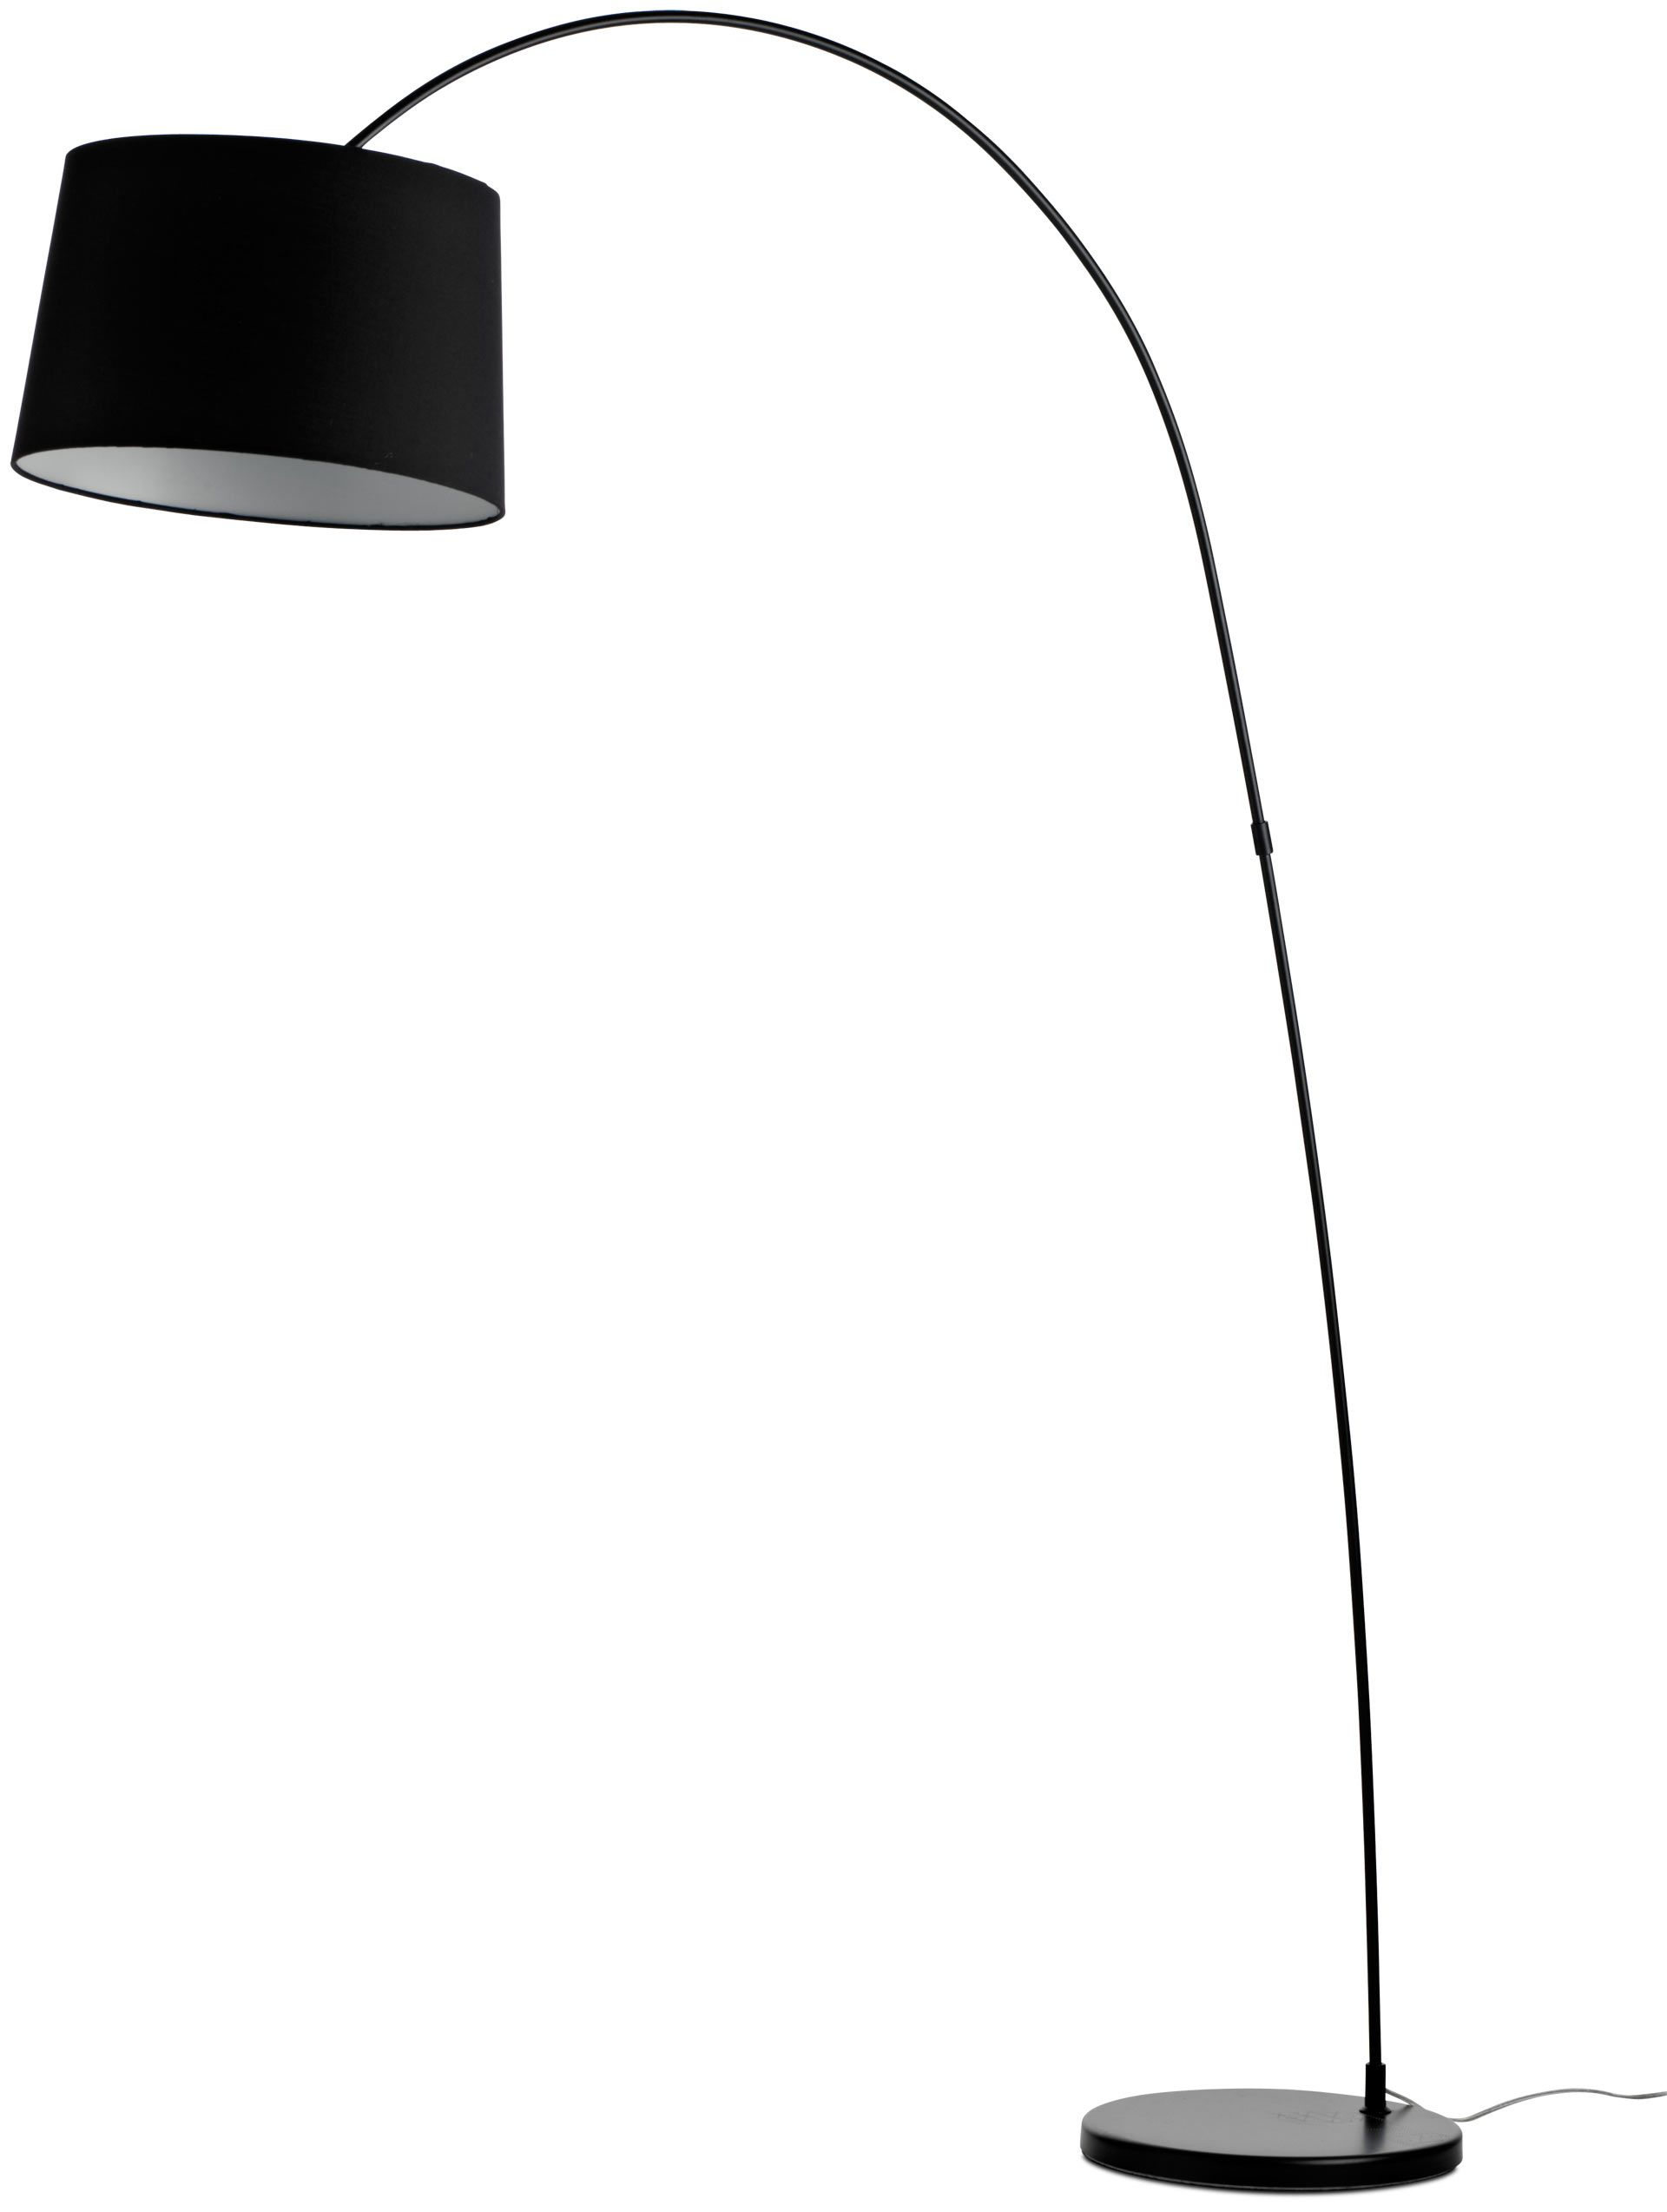 Kuta floor lamp - test the concept and all our nrew furniture in ...